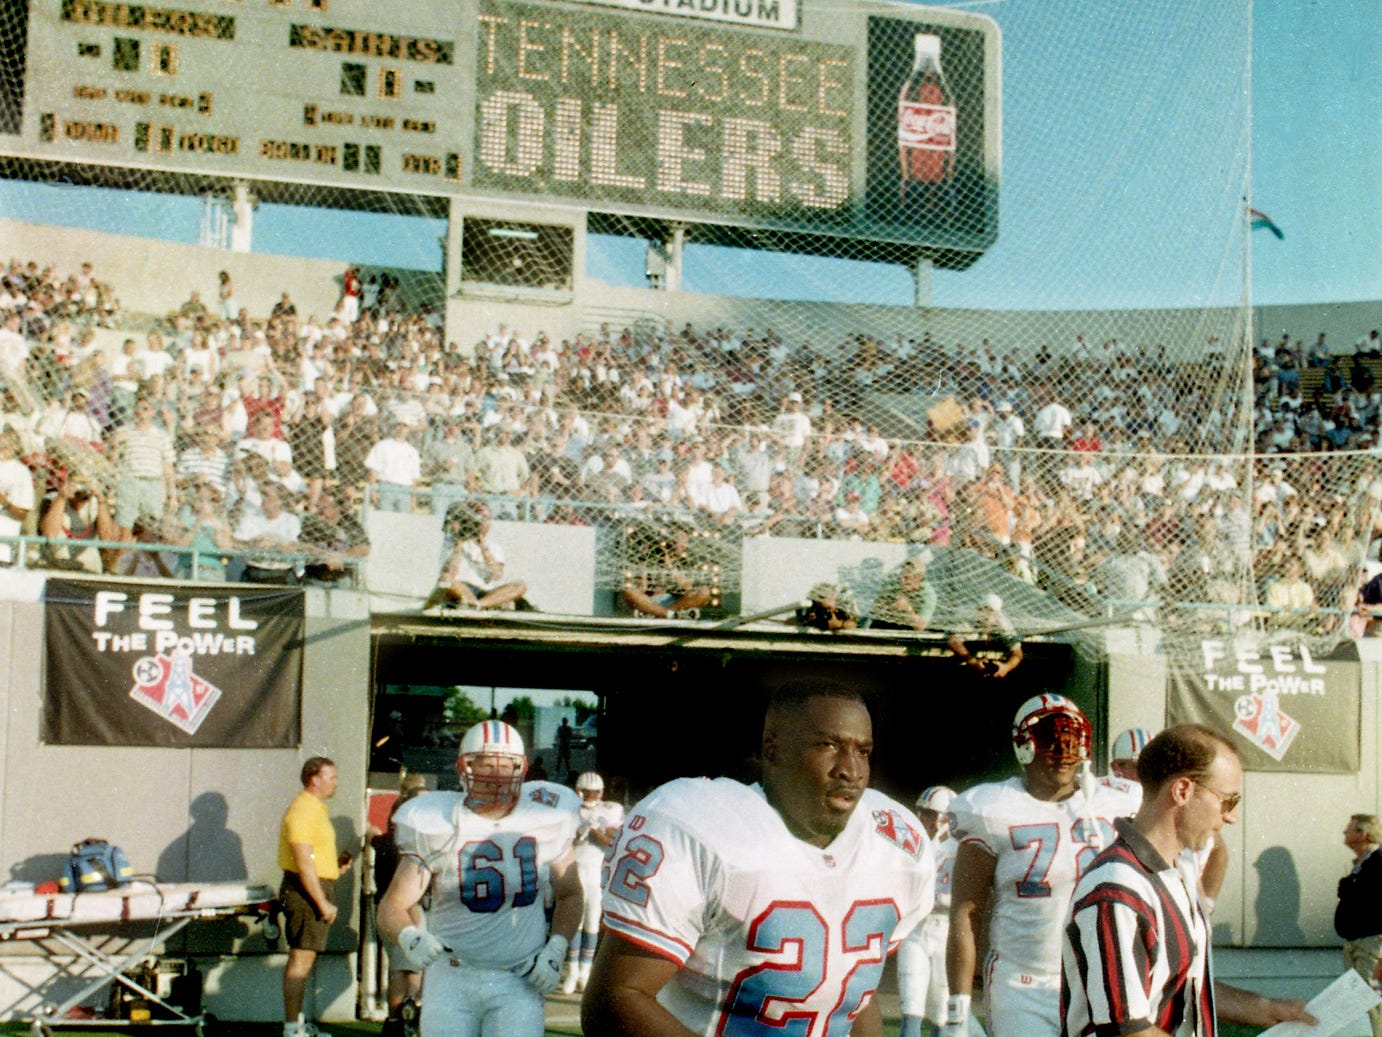 Tennessee Oilers players Mike Archie (22), Sean Wells (61) and Brad Hopkins (72) walks on to the field for their pre-season game with New Orleans Saints at Liberty Bowl Memorial Stadium in Memphis Aug. 2, 1997. It is the Oilers very first game in their new state.